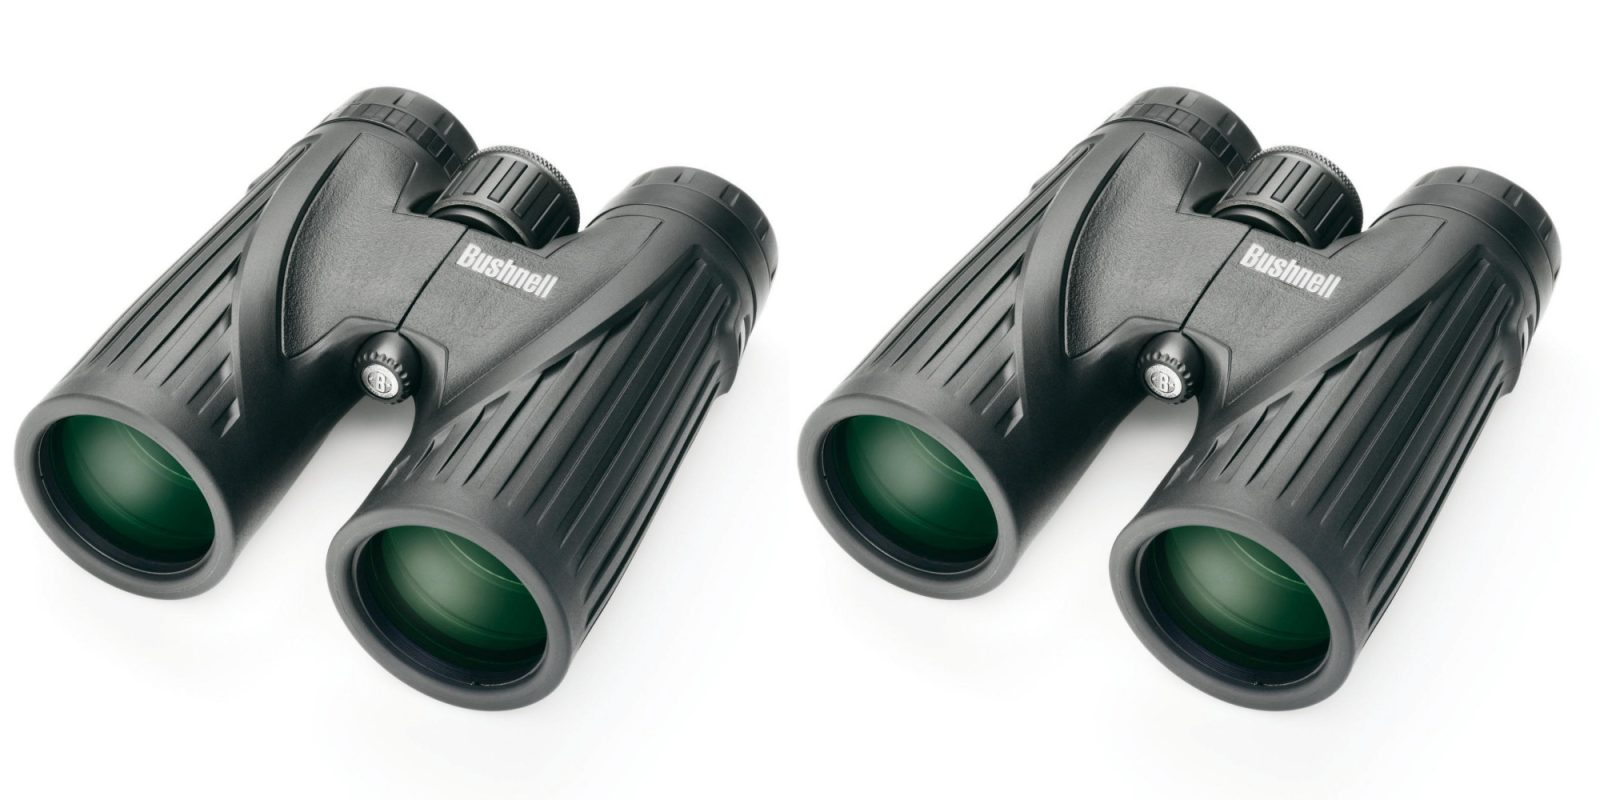 Be ready for fall sightseeing: Bushnell 8×42 Binocular $100 (Reg. up to $230)